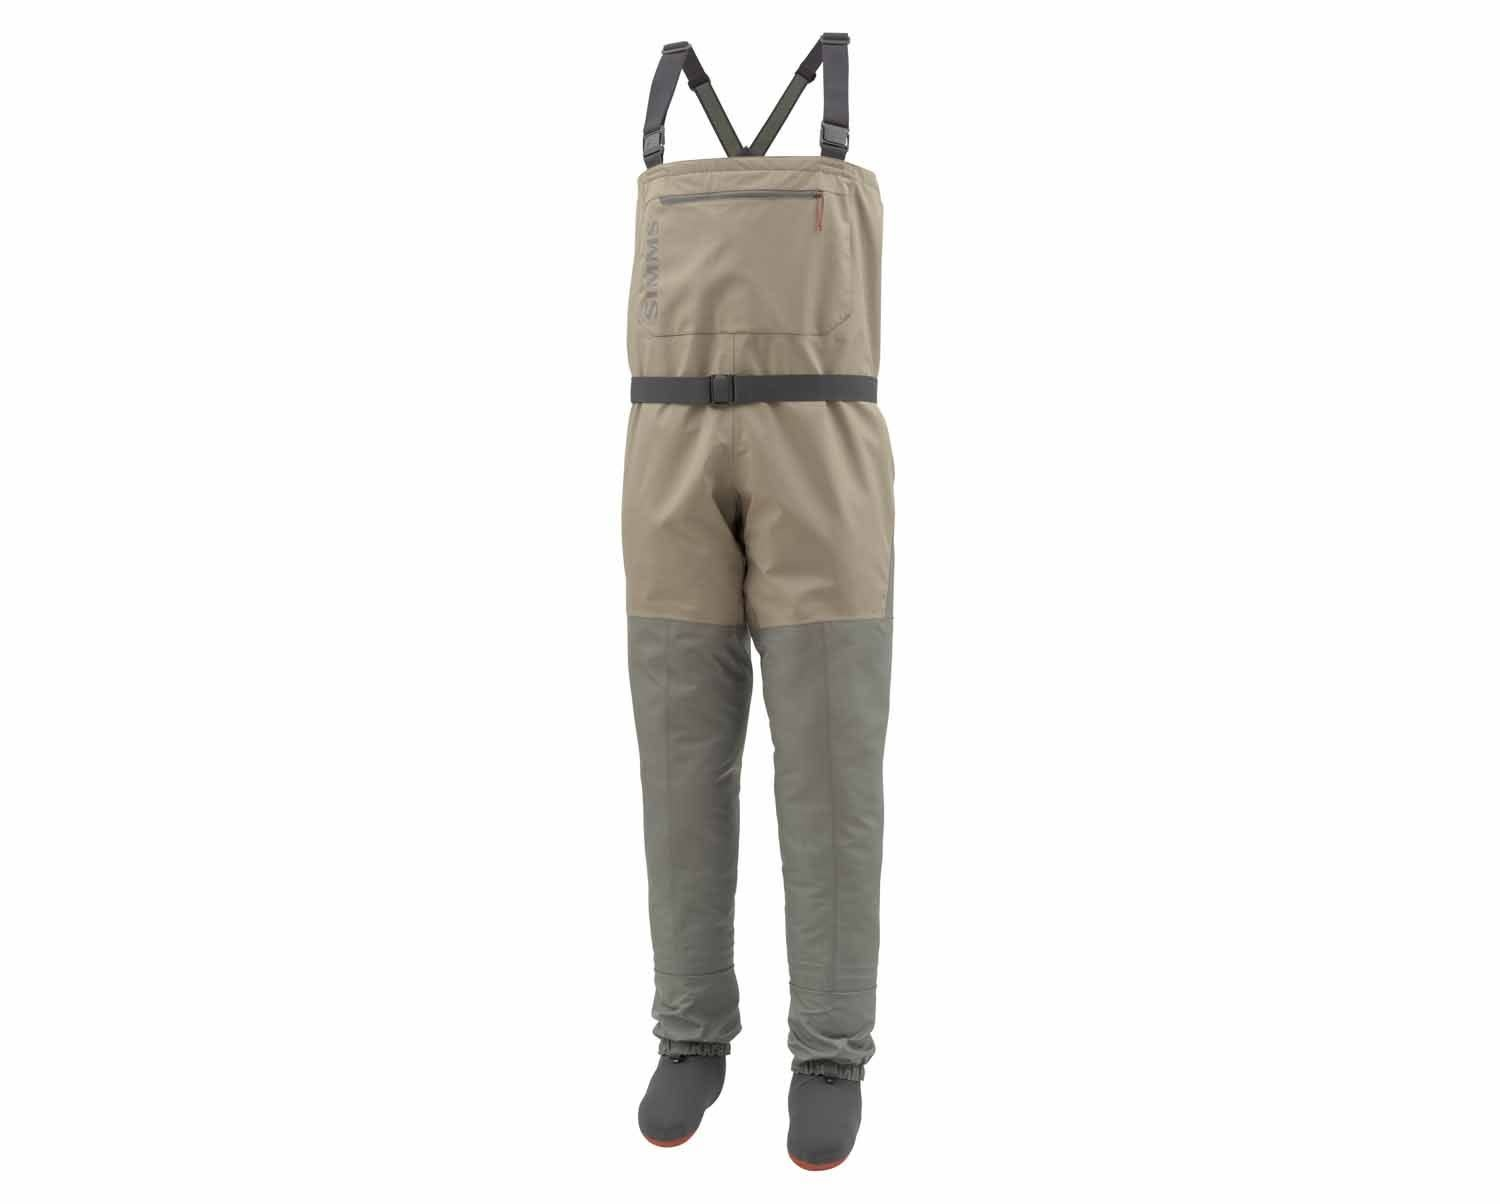 Simms Stockingfoot Tributary Wader